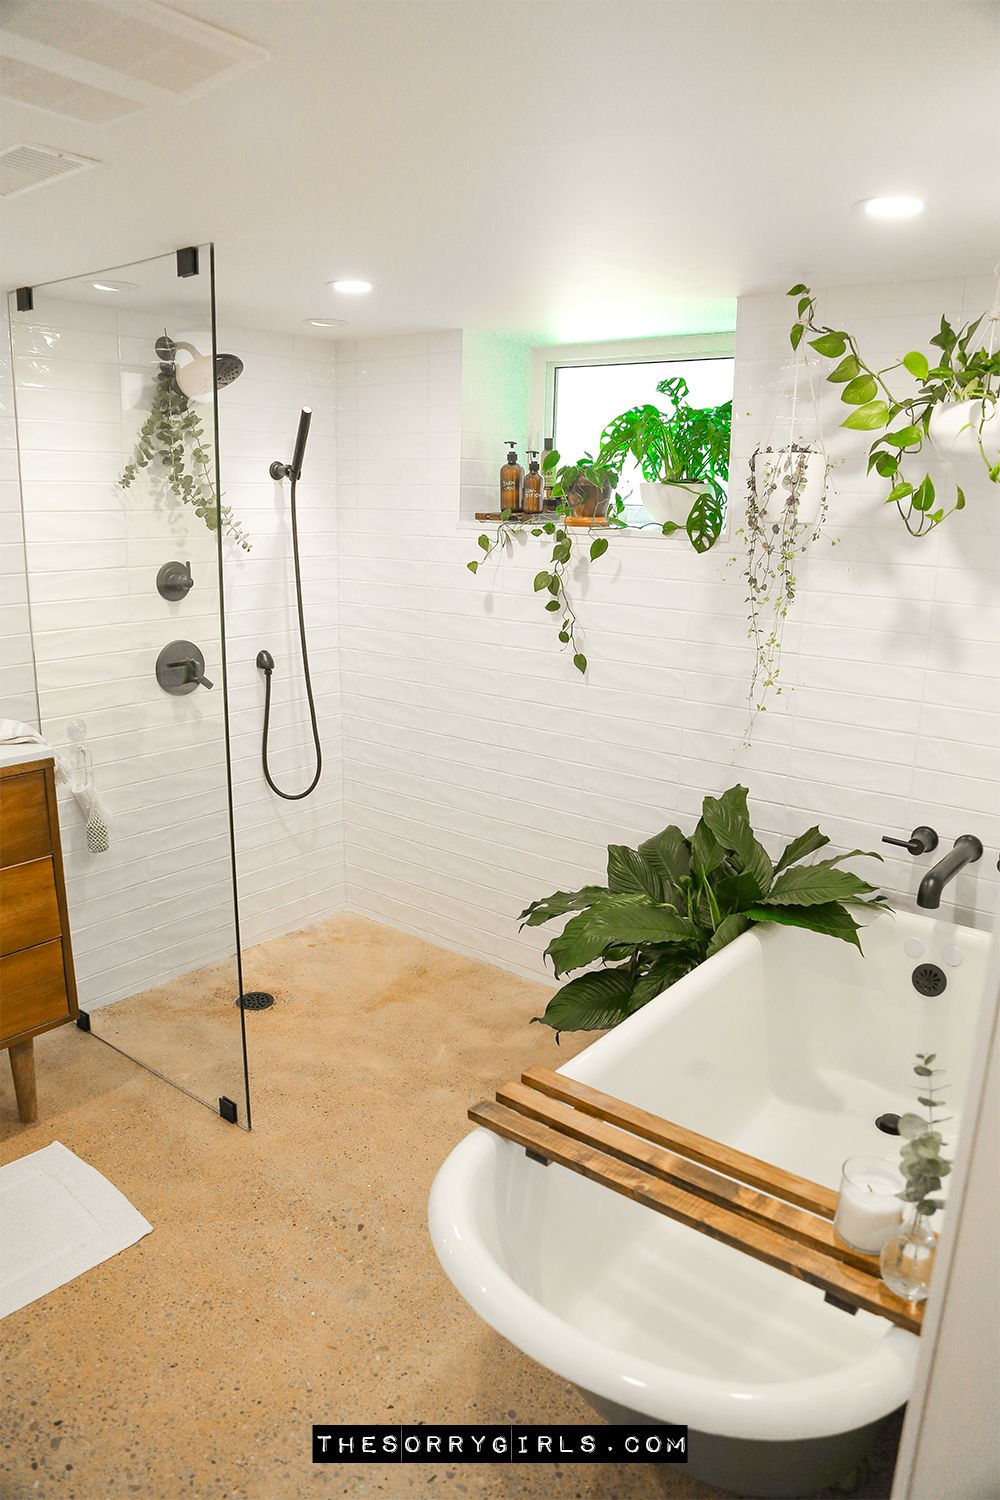 Complete Dream Spa Basement Bathroom Makeover Making Home The Sorry Girls In 2020 Bathroom Makeover Bathroom Spa Dreams Spa